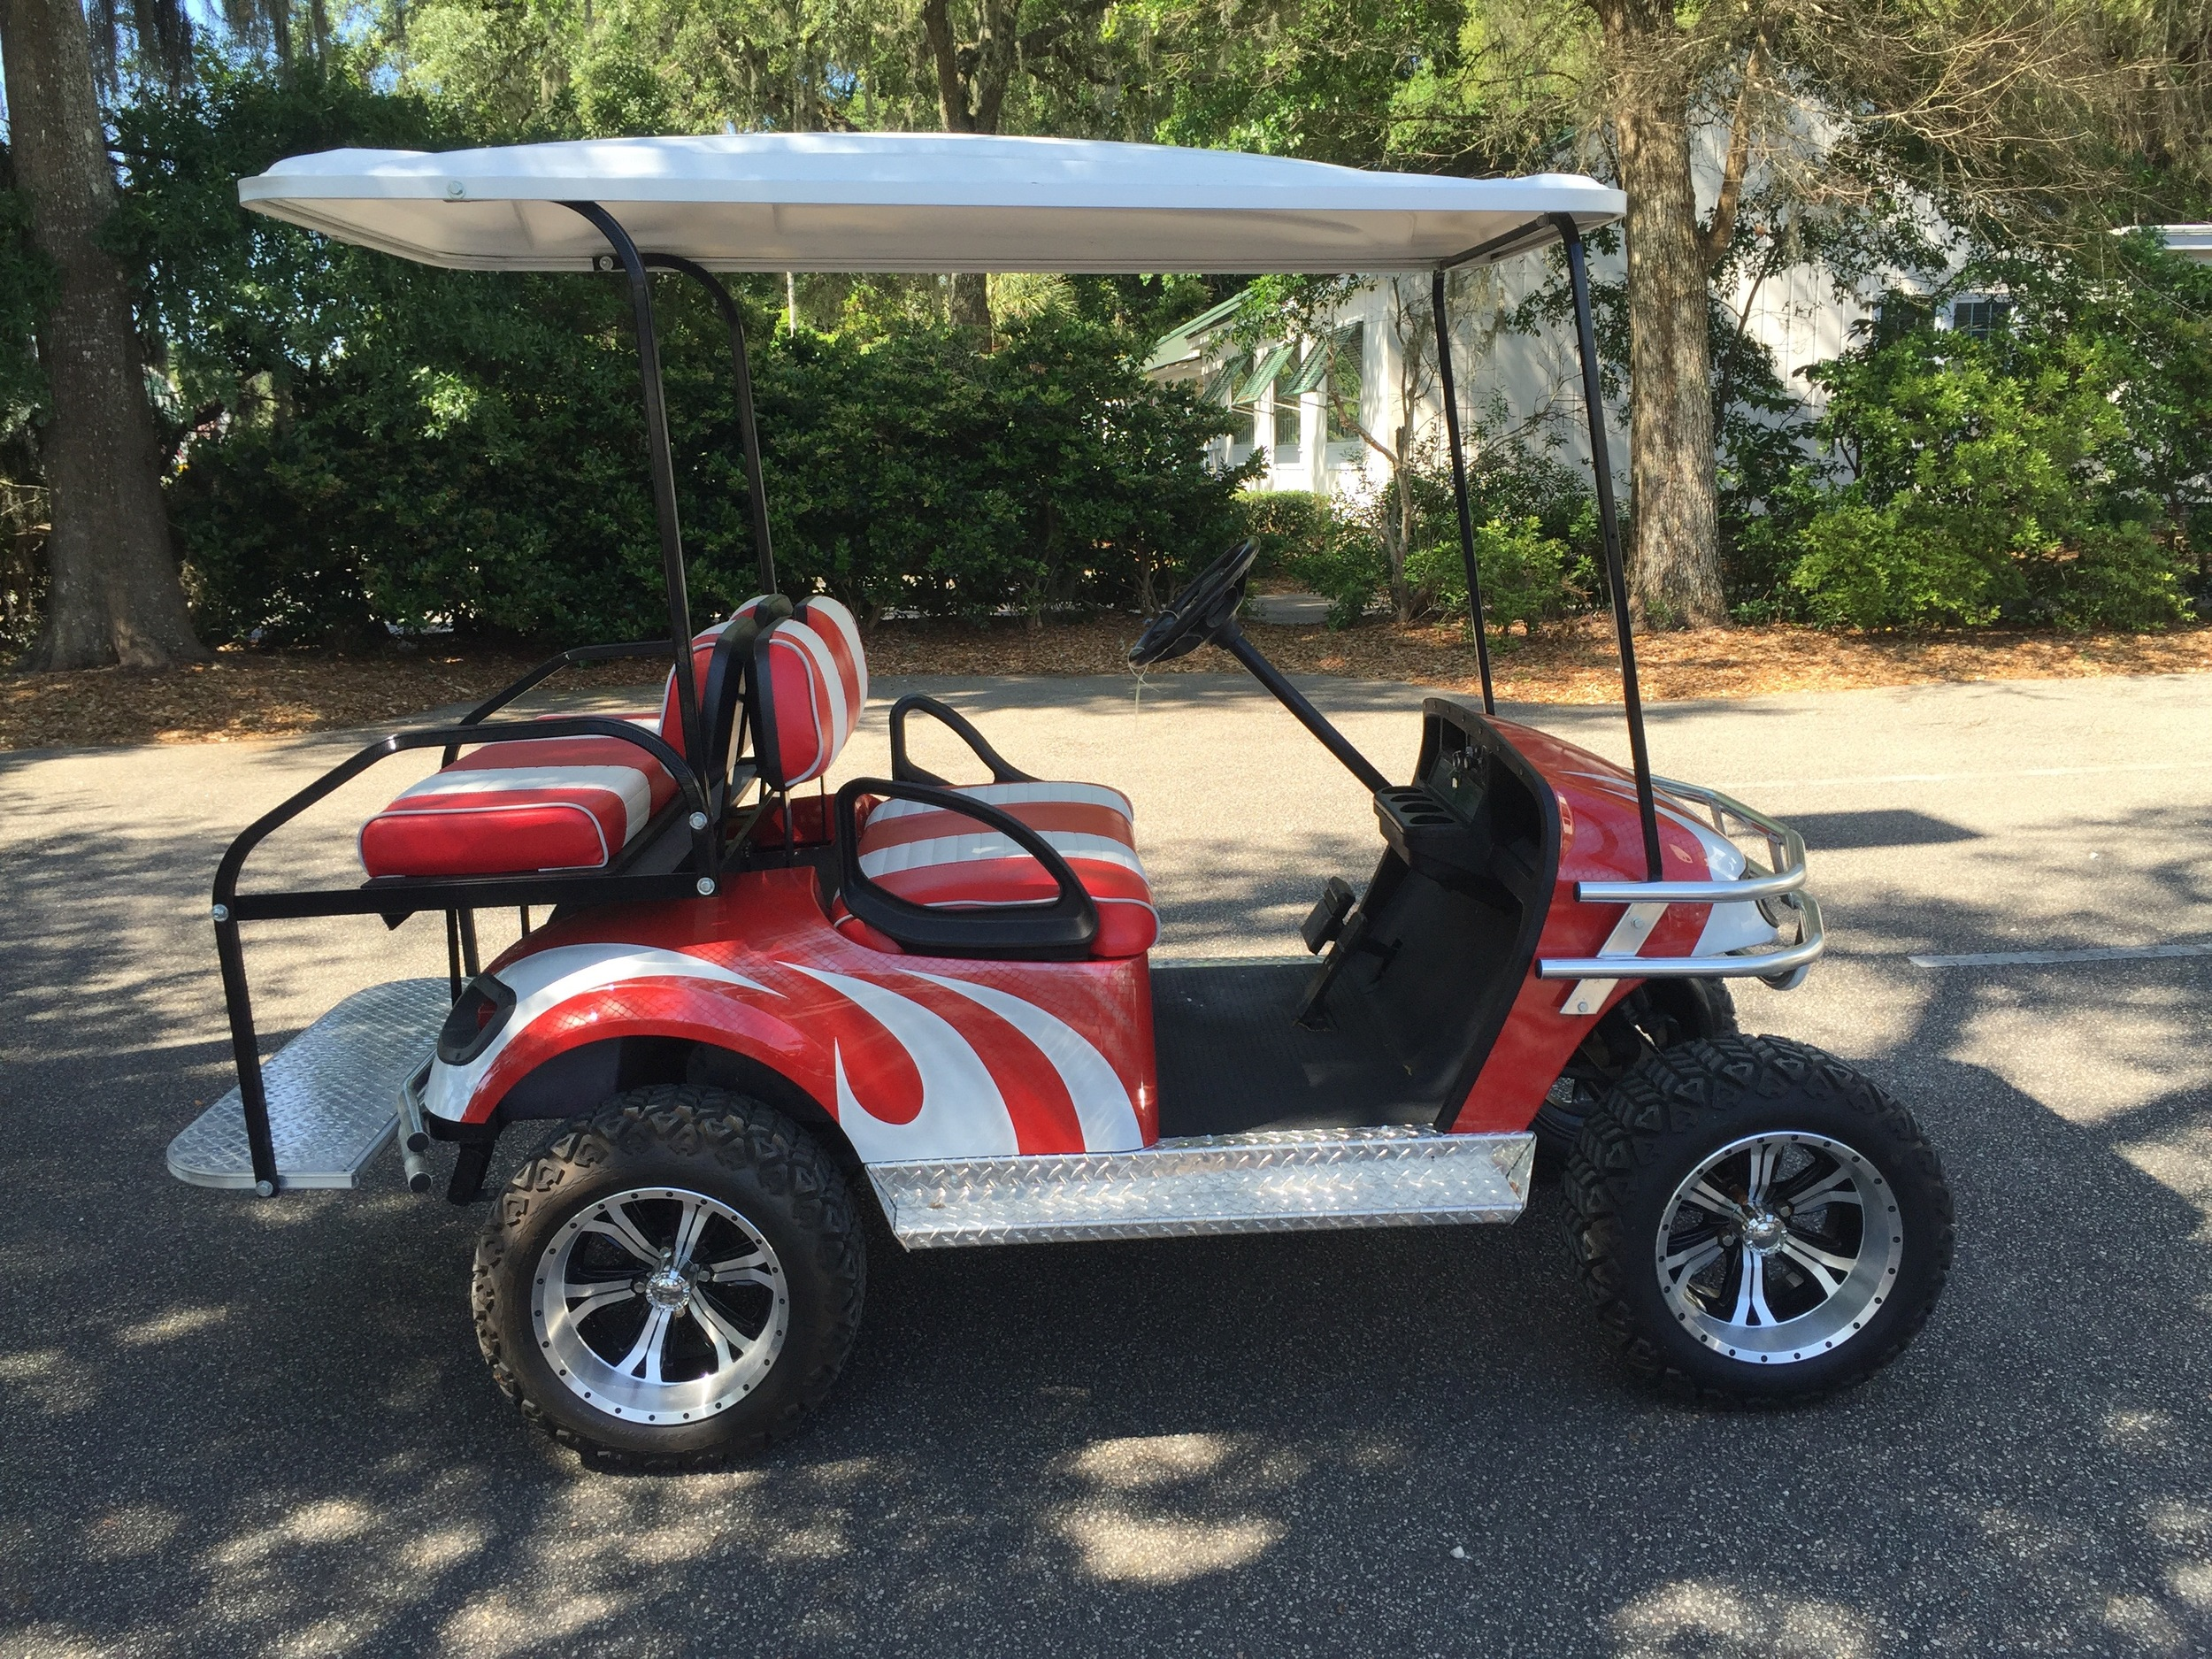 Red Swirl EZGO Lifted Cart  Red/white seats, white extended top, new batteries, high speed code, LED lights, Backlash (23x10x14) tires, chrome brush guard, running board, and rear guard